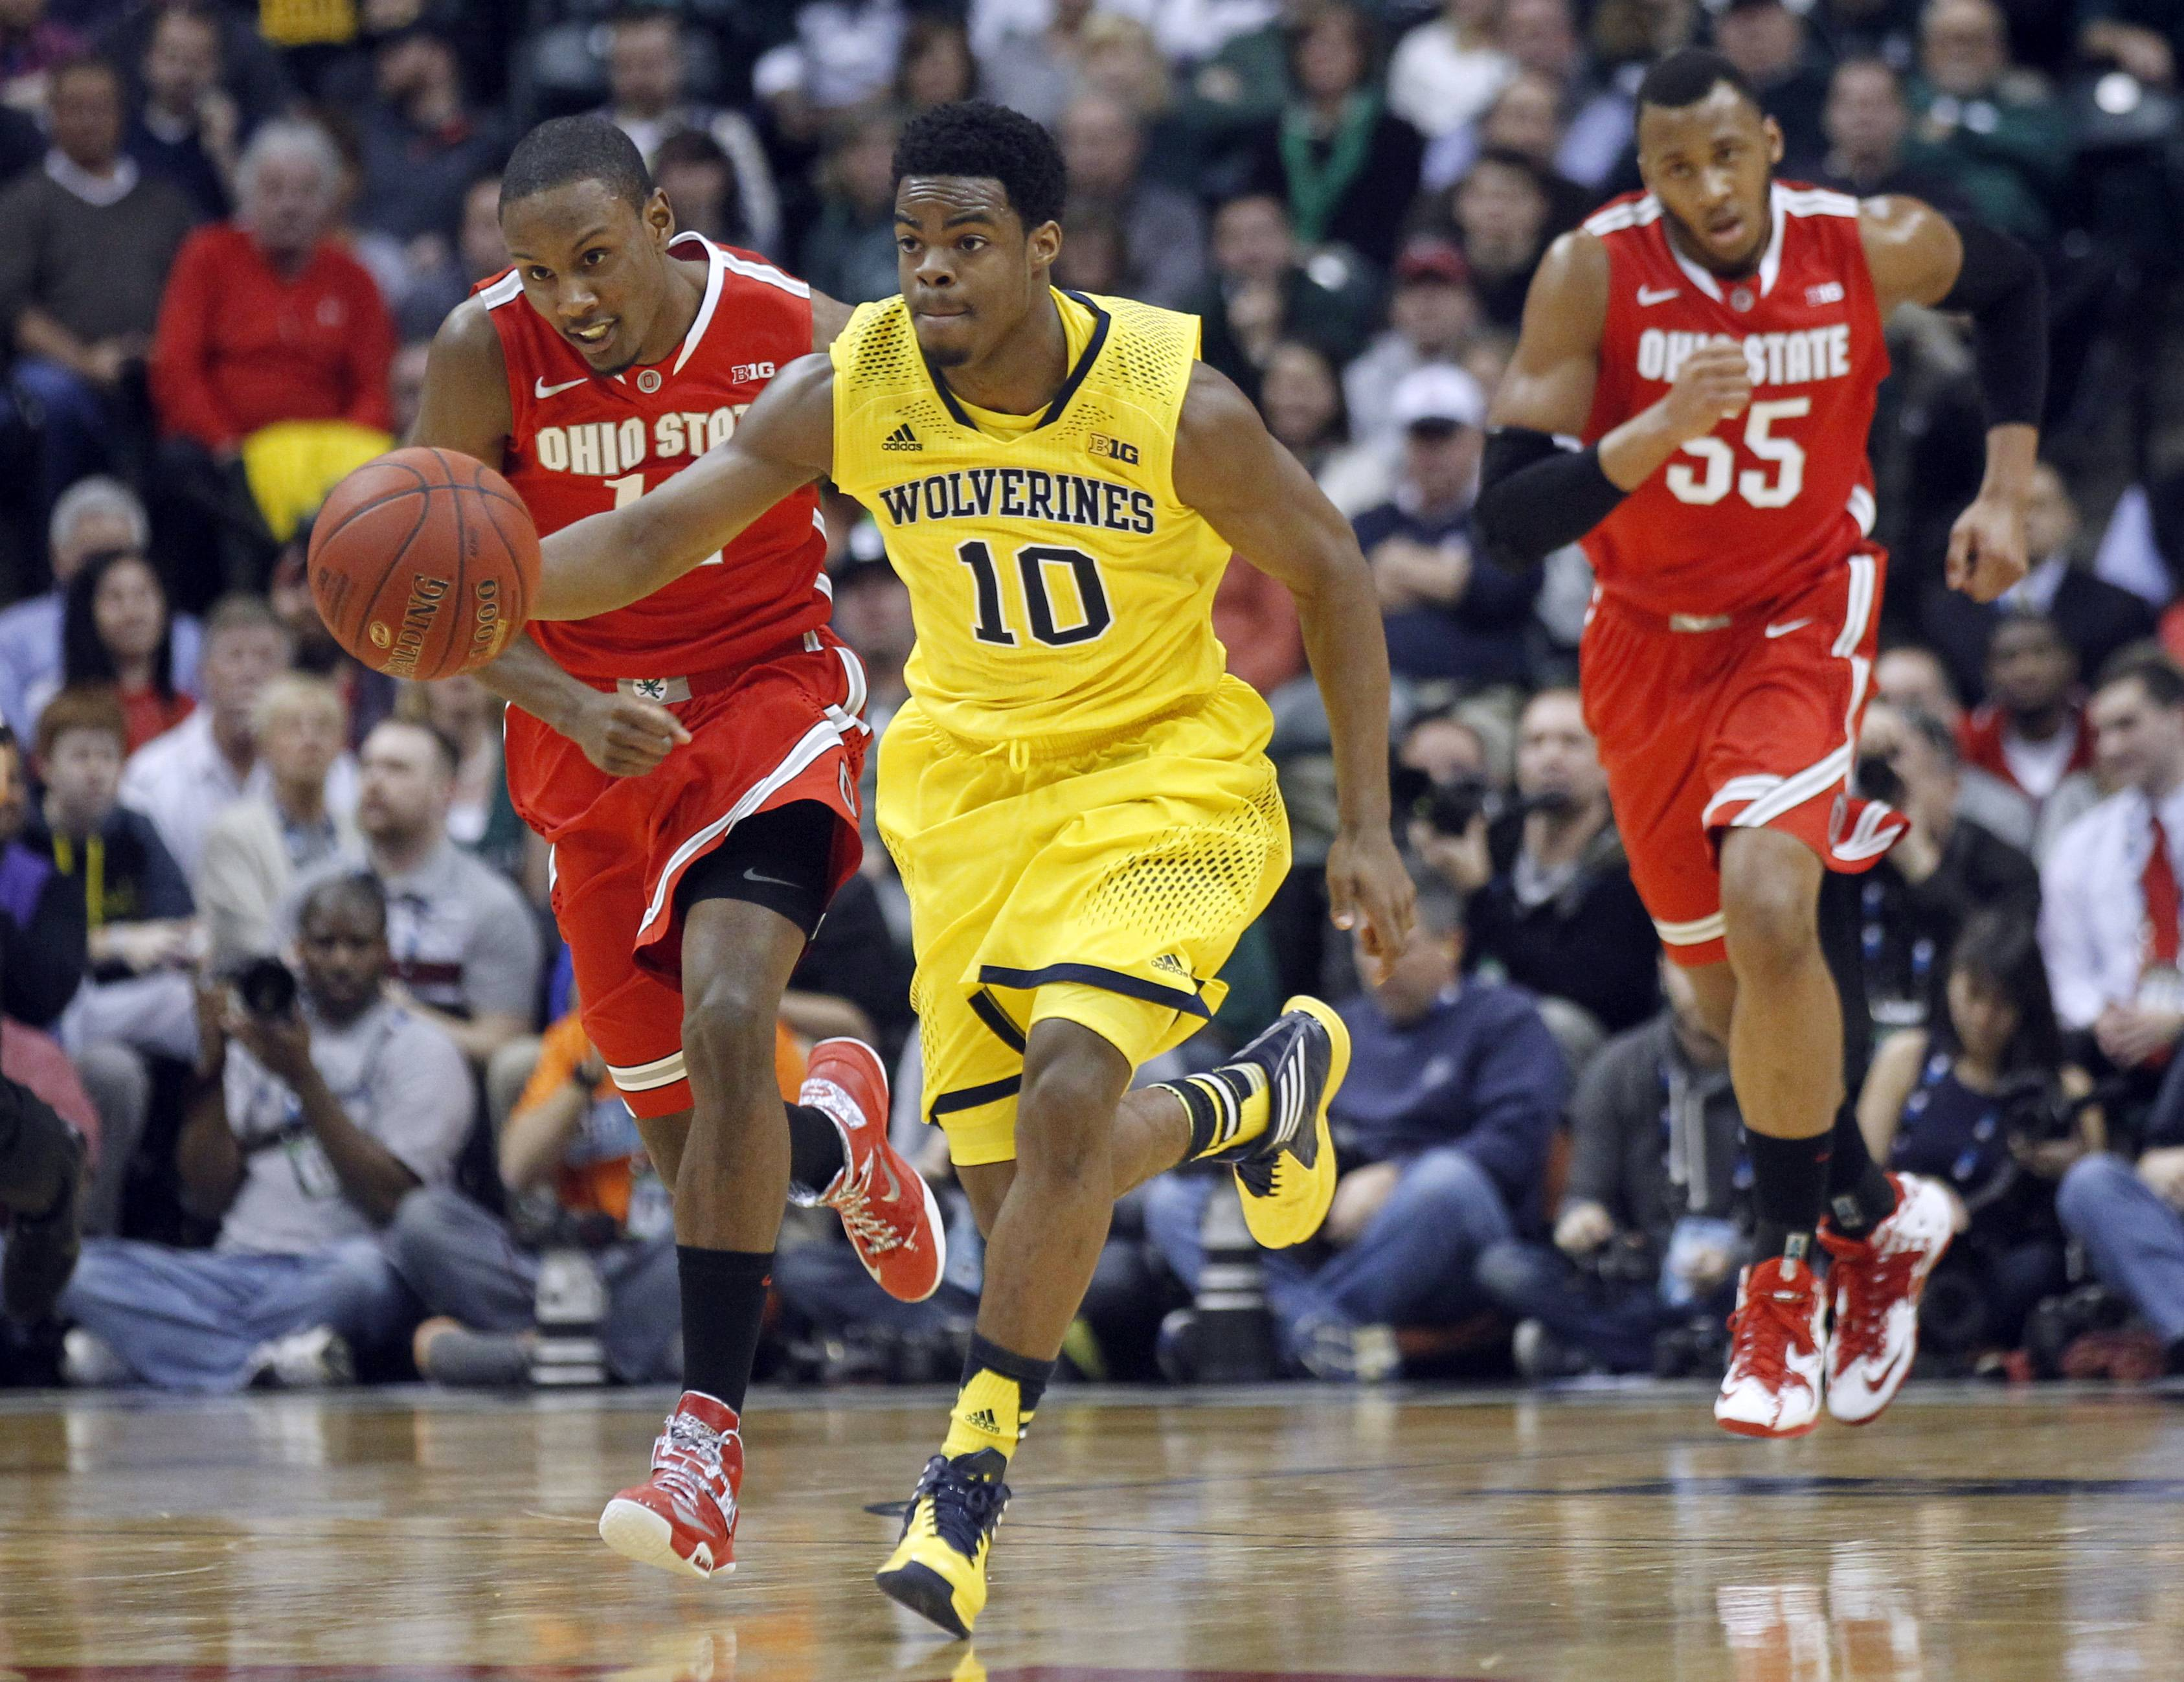 Michigan guard Derrick Walton Jr. drives the ball against Ohio State in the semifinals of the Big Ten Conference tournament Saturday in Indianapolis. Michigan won 72-69.